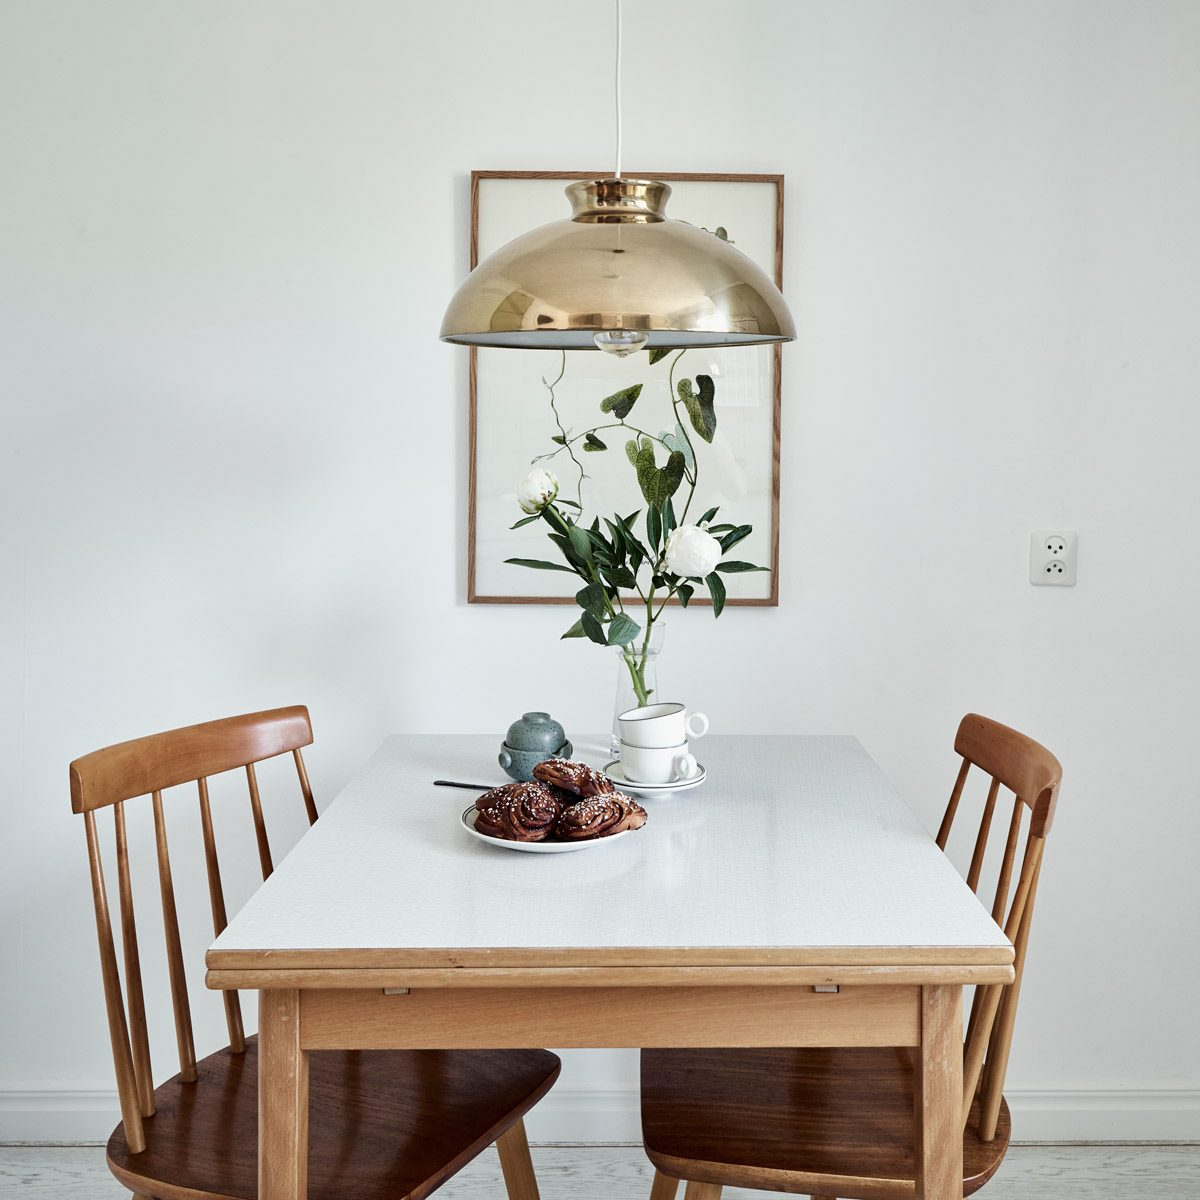 10 Best Kitchen And Dining Tables For Small Spaces